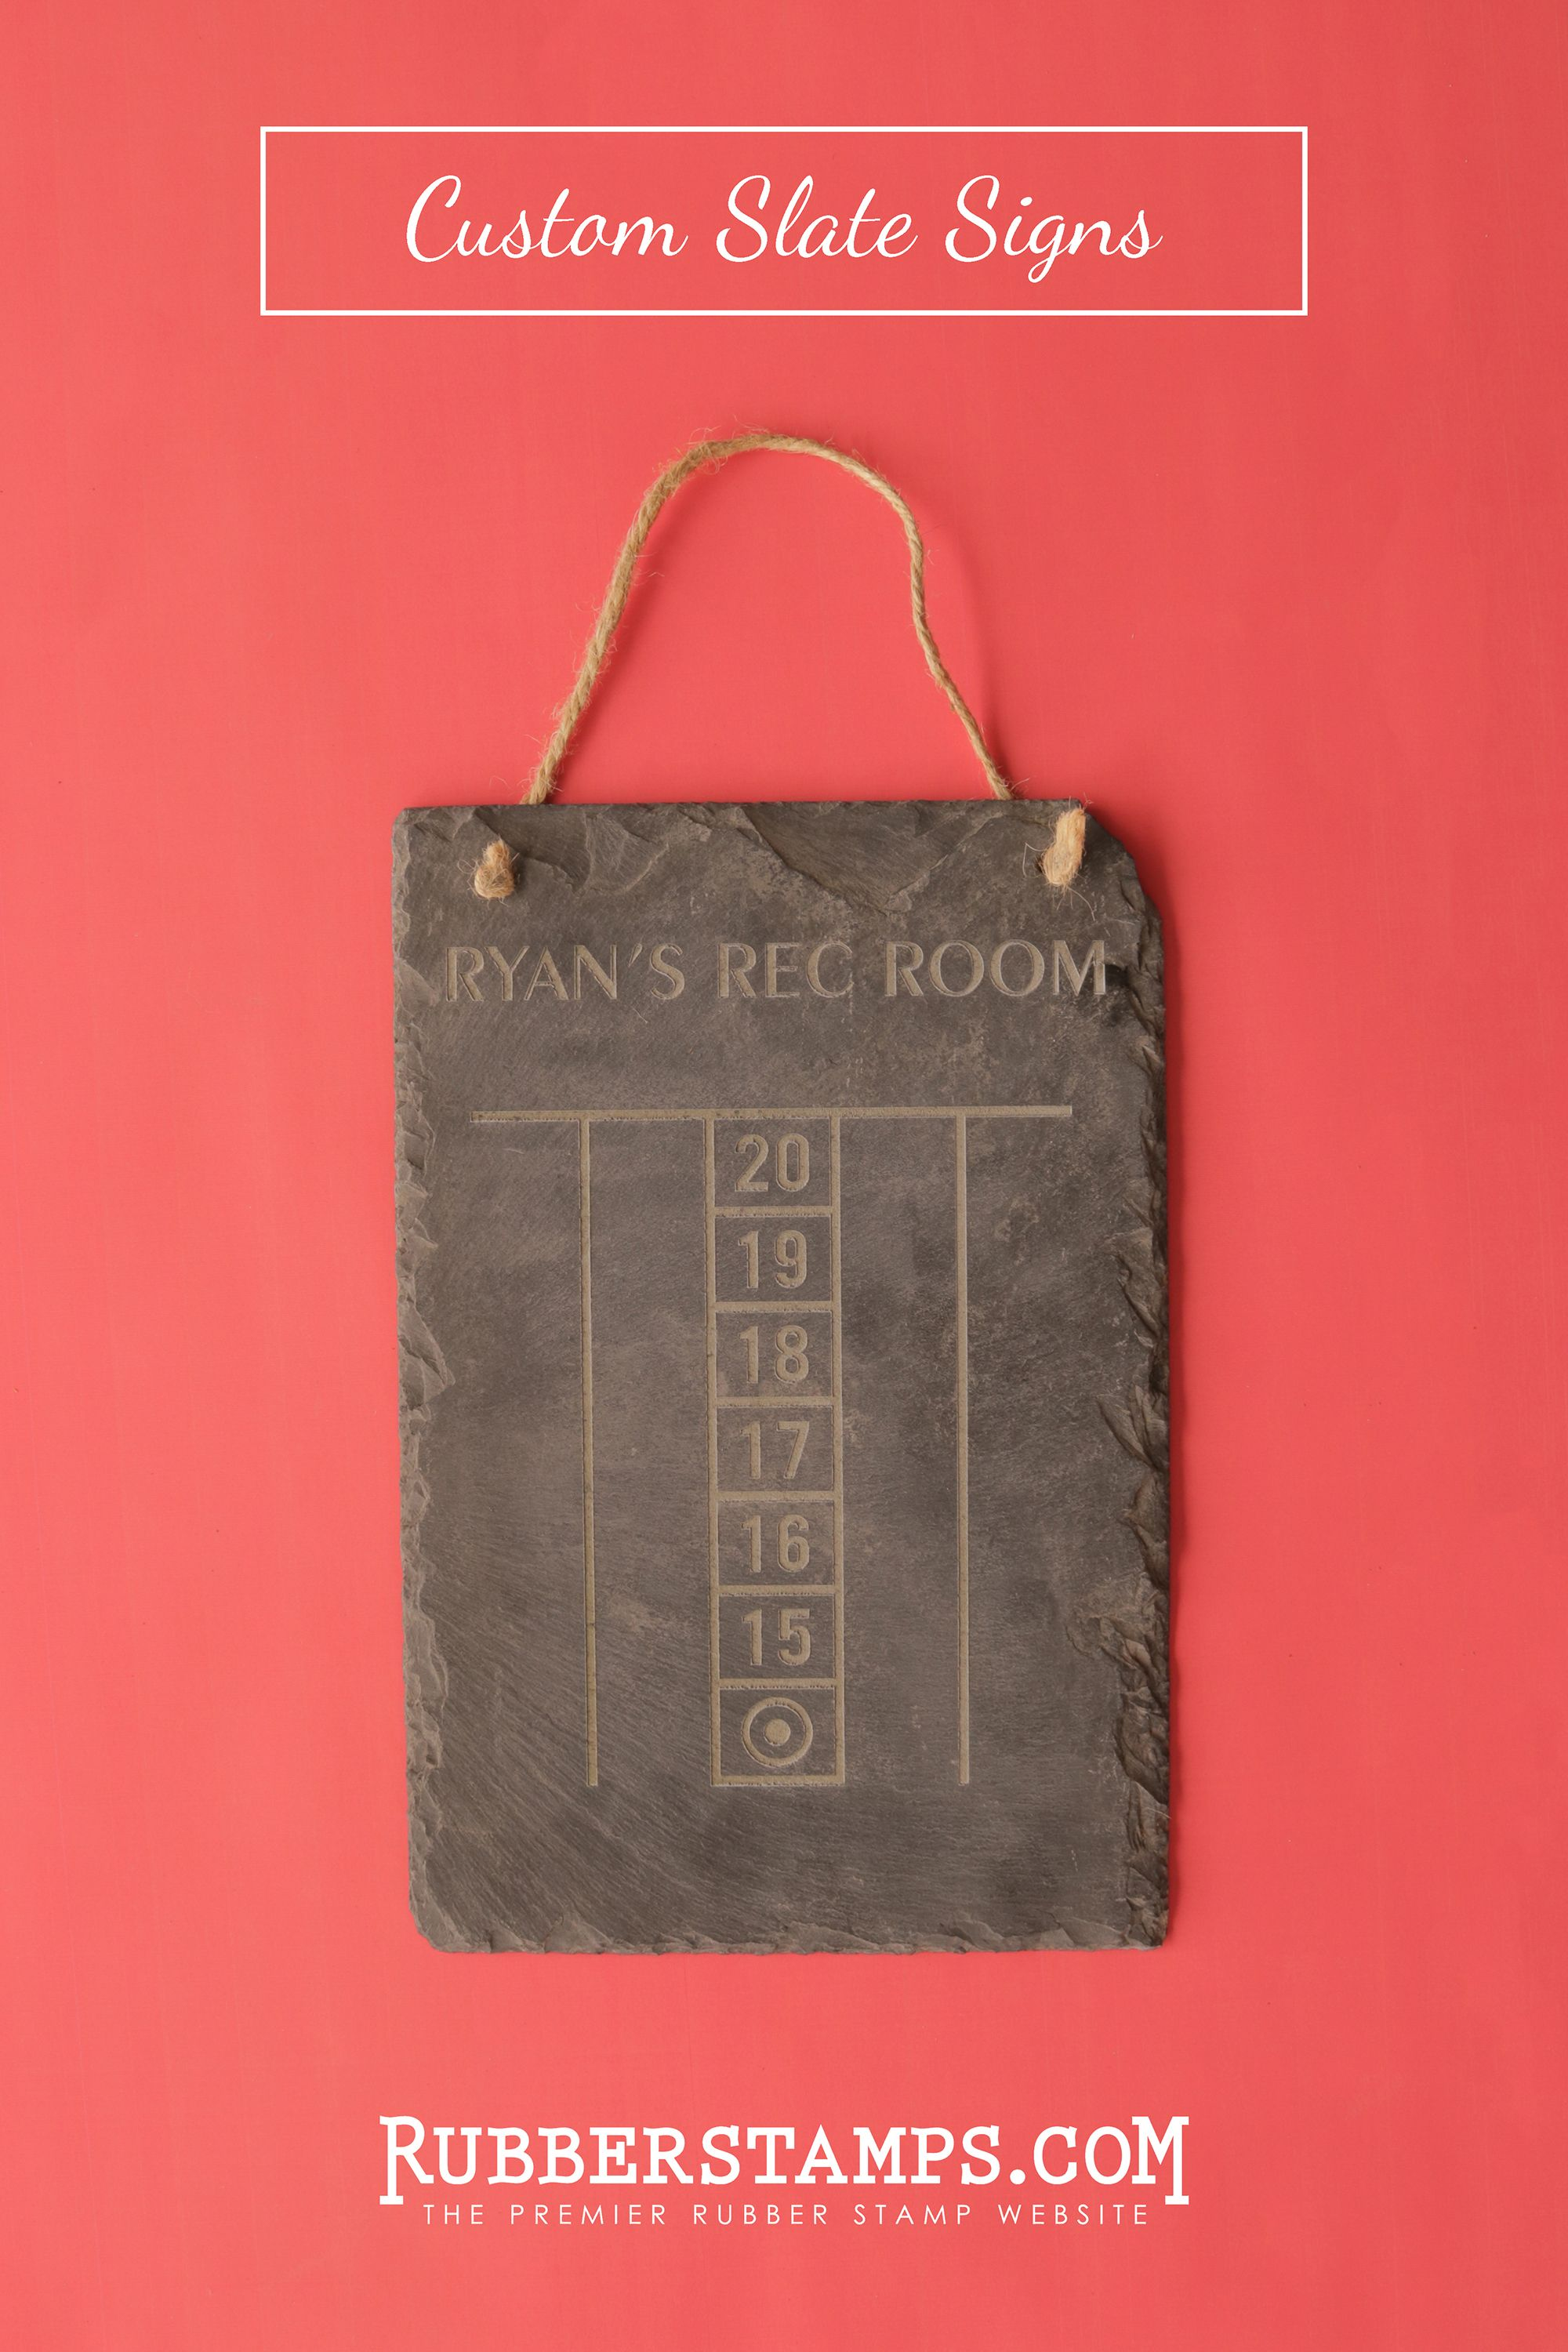 Engraved Custom Slate Signs Featuring A Natural Split Surface